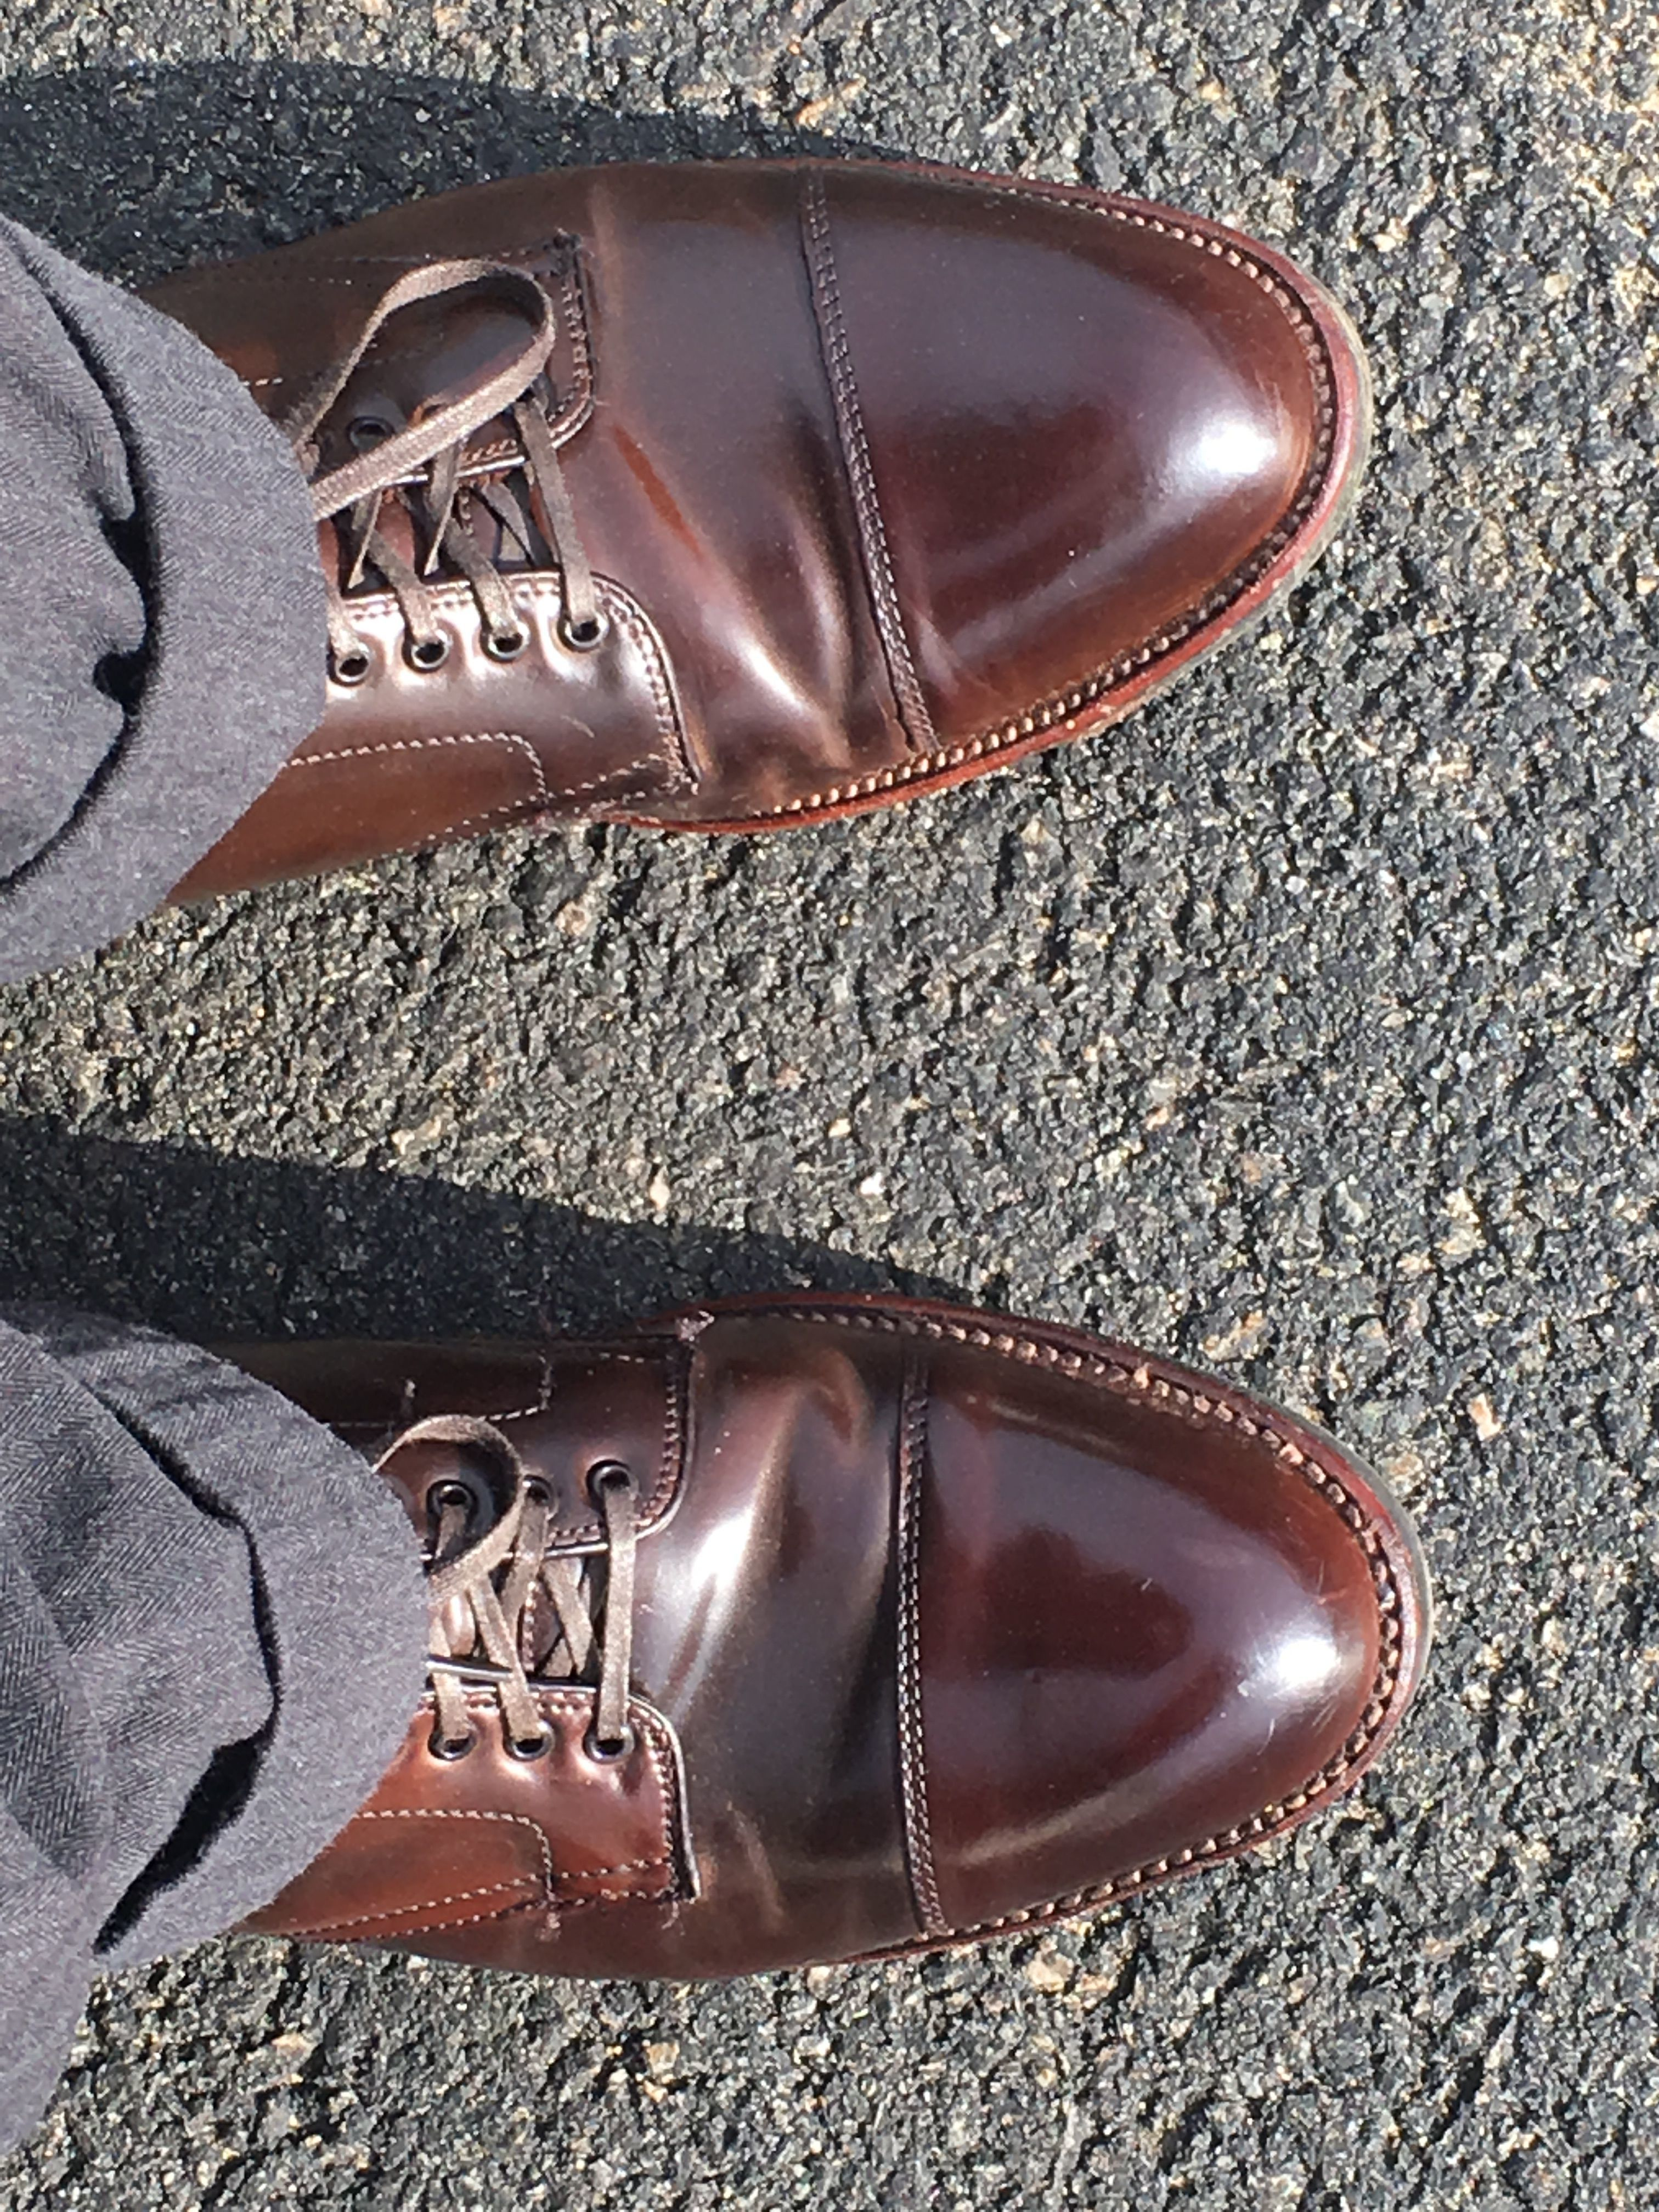 DuckOB's photos in The Official Alden Thread for 2017 - Share Reviews, Sizing, Advice, and Photos.